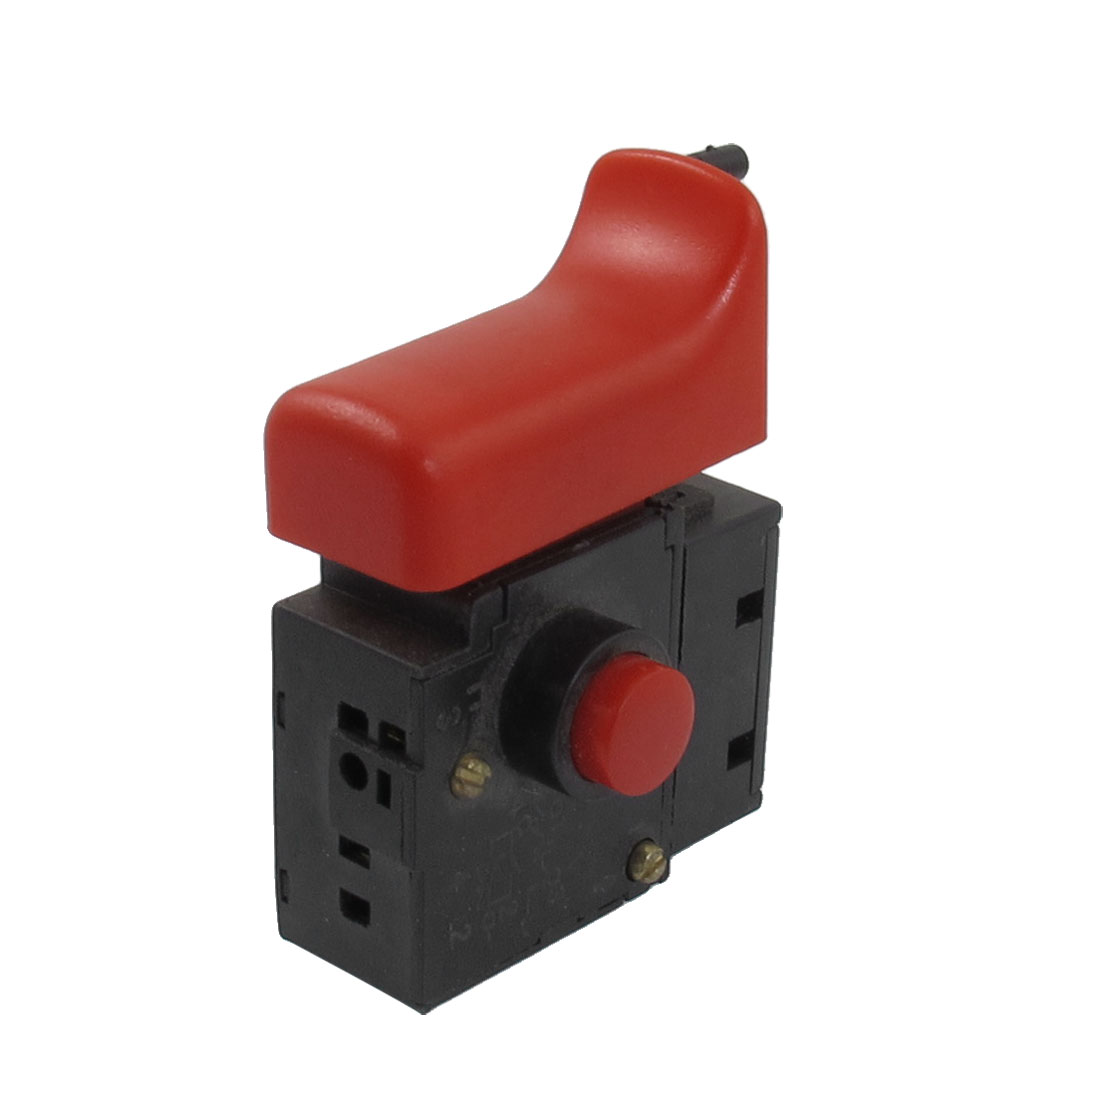 AC 250V 6A Lock On Red Case Trigger Switch for Bosch 10RE Electric Drill